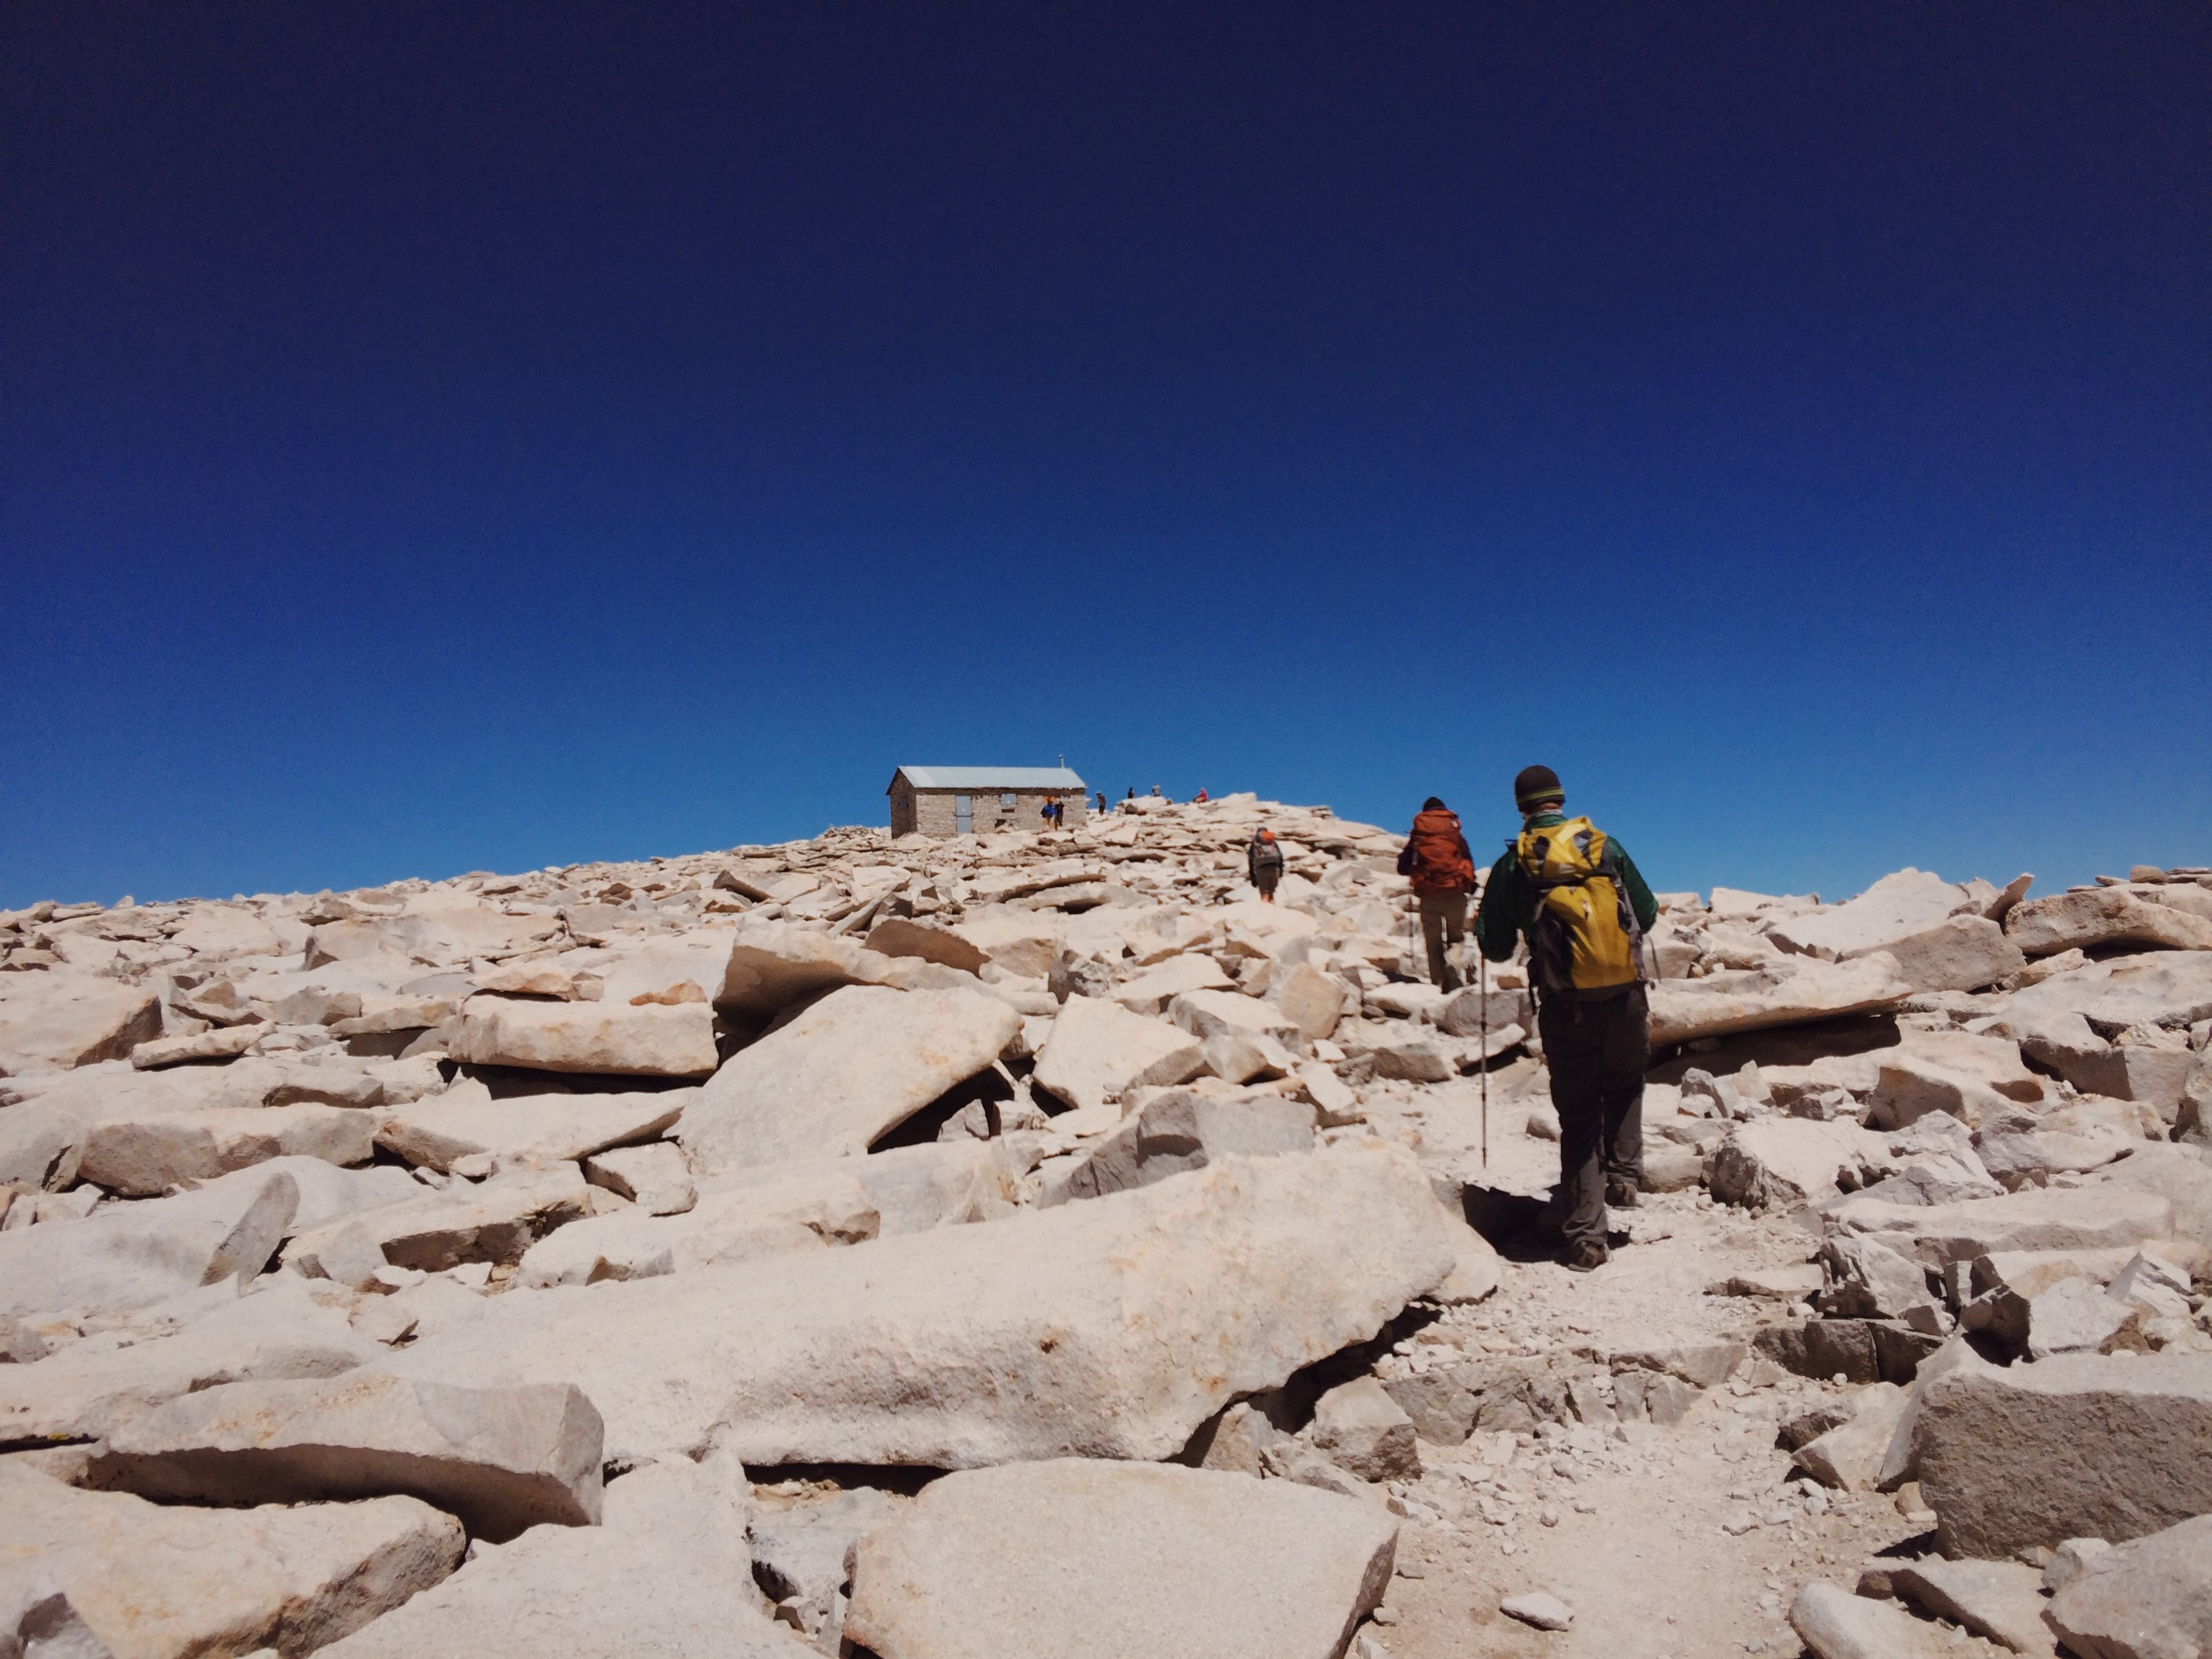 Taking the last few steps to the summit of Mt. Whitney (14,505'), the southern terminus of the JMT. Yes, the sky really was that blue.